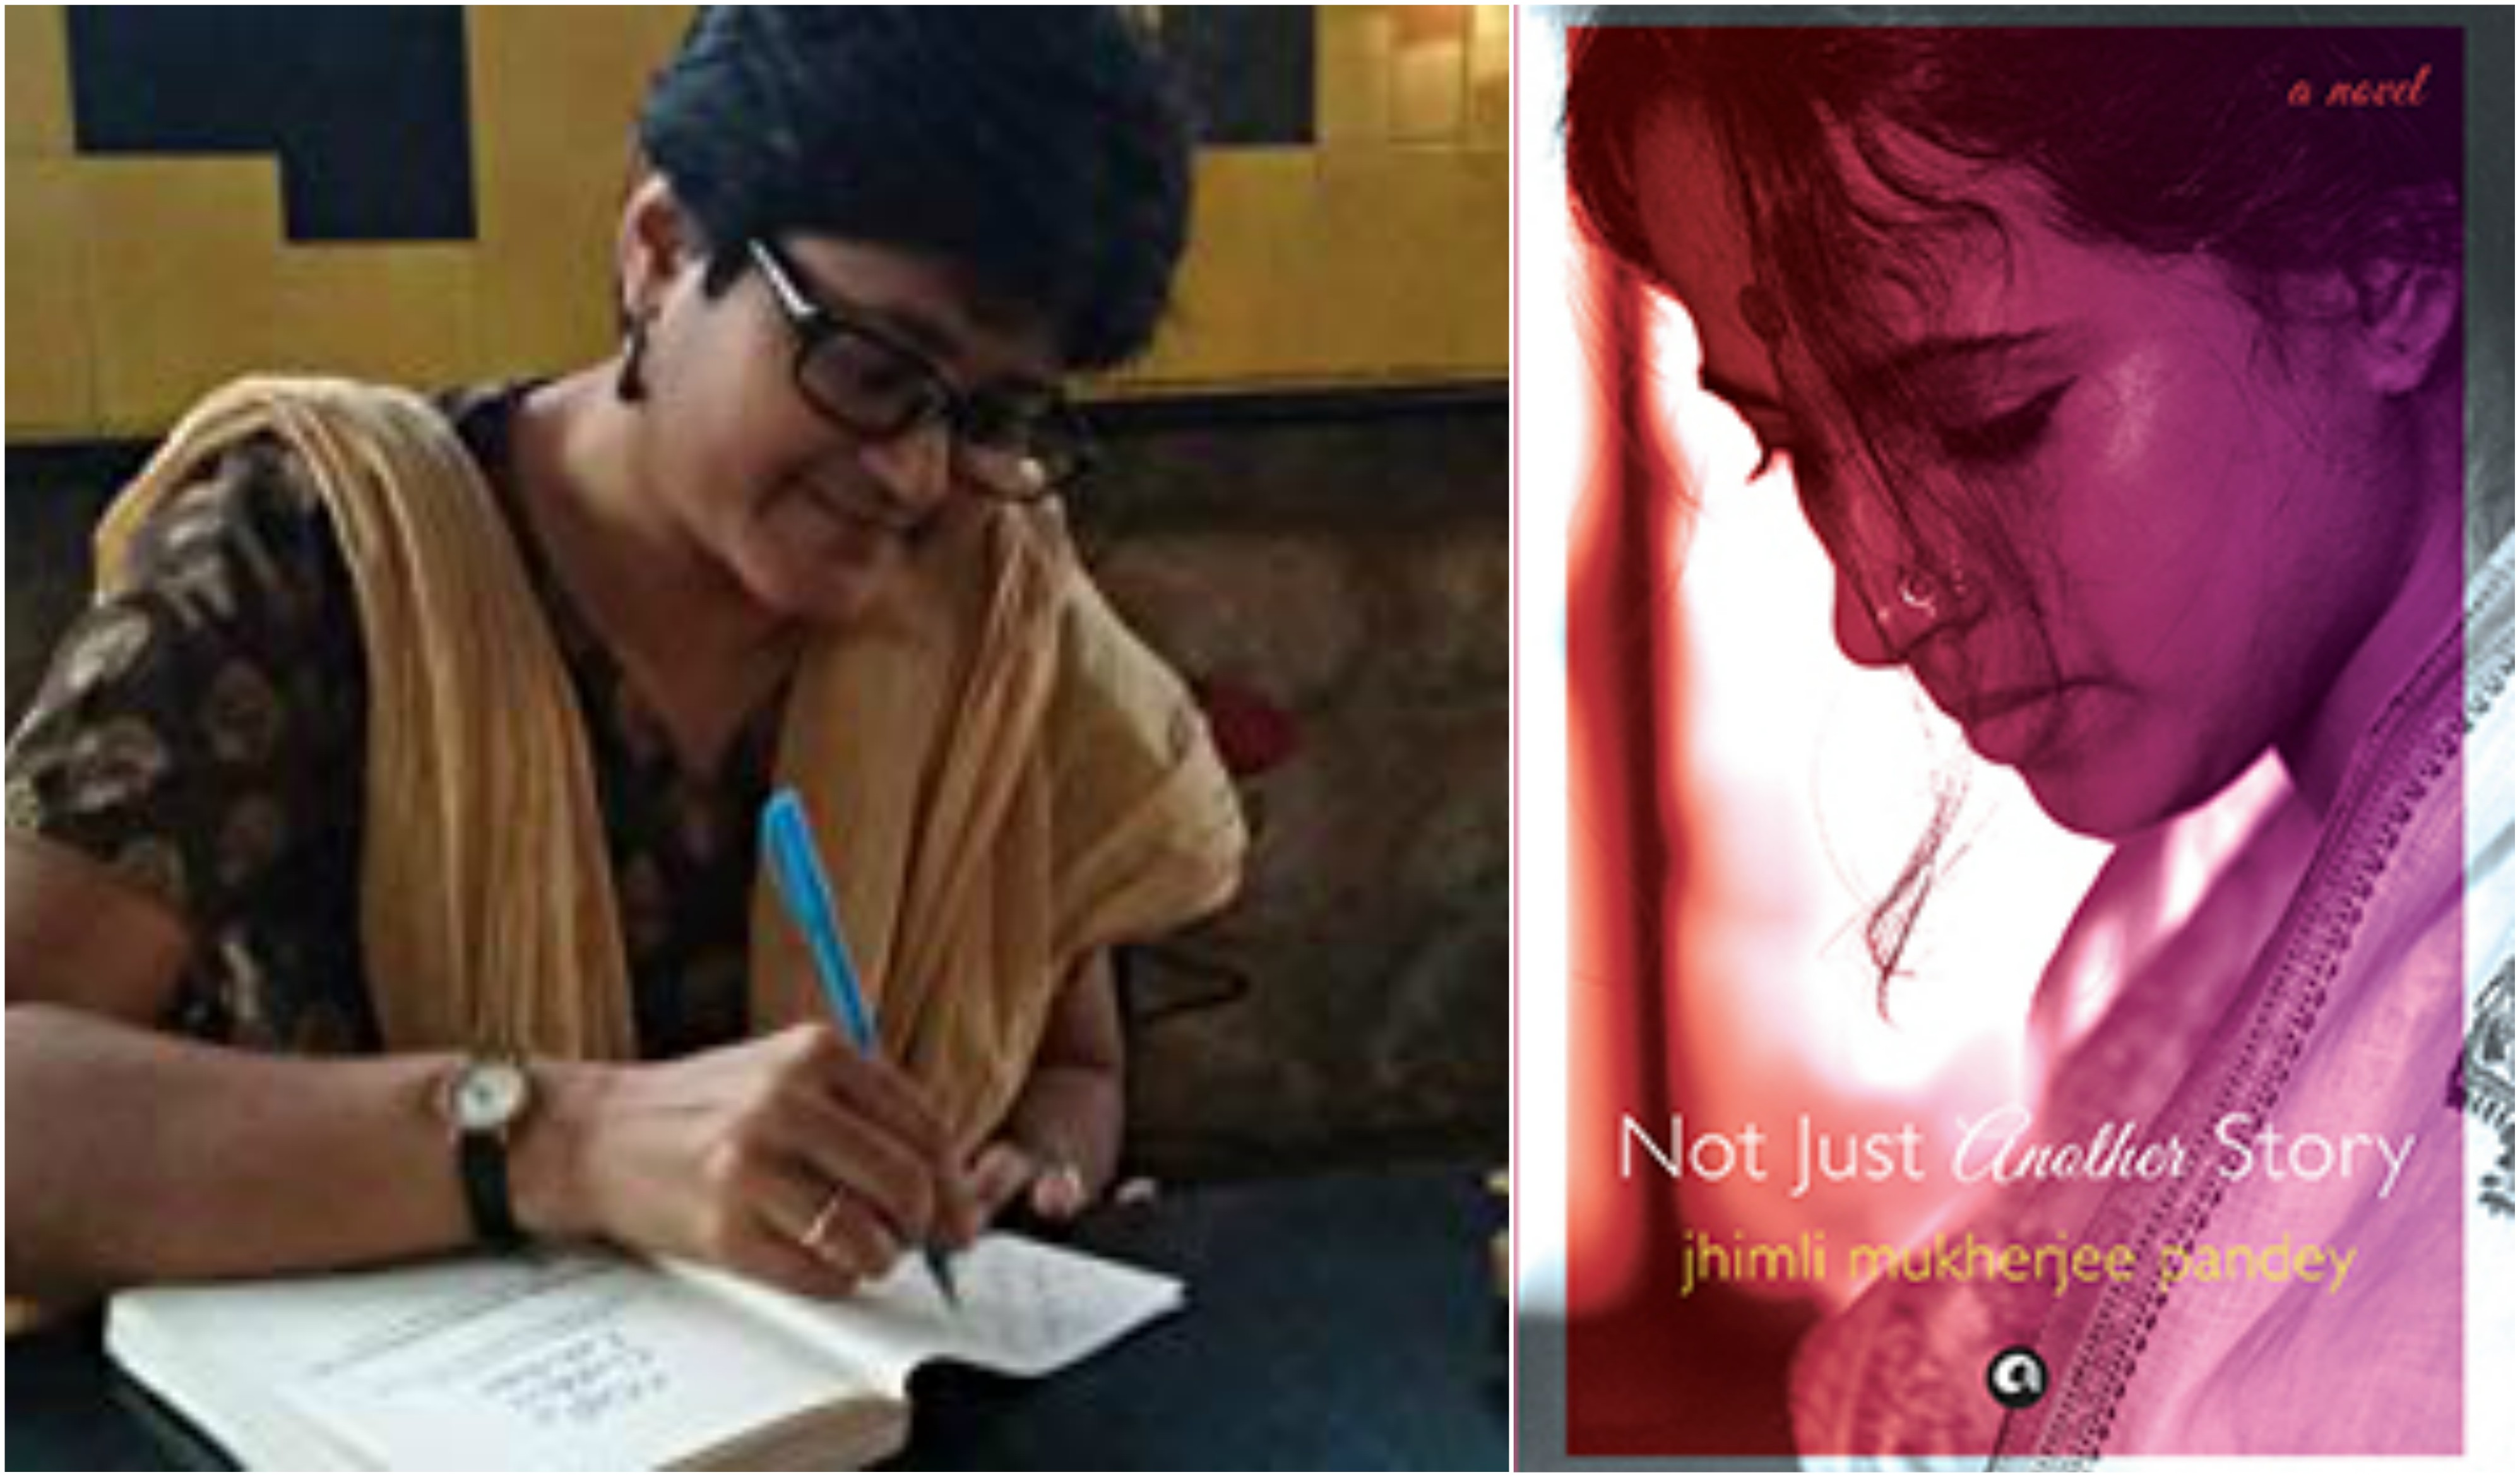 Book Review: Not Just Another Story By Jhimli Mukherjee Pandey